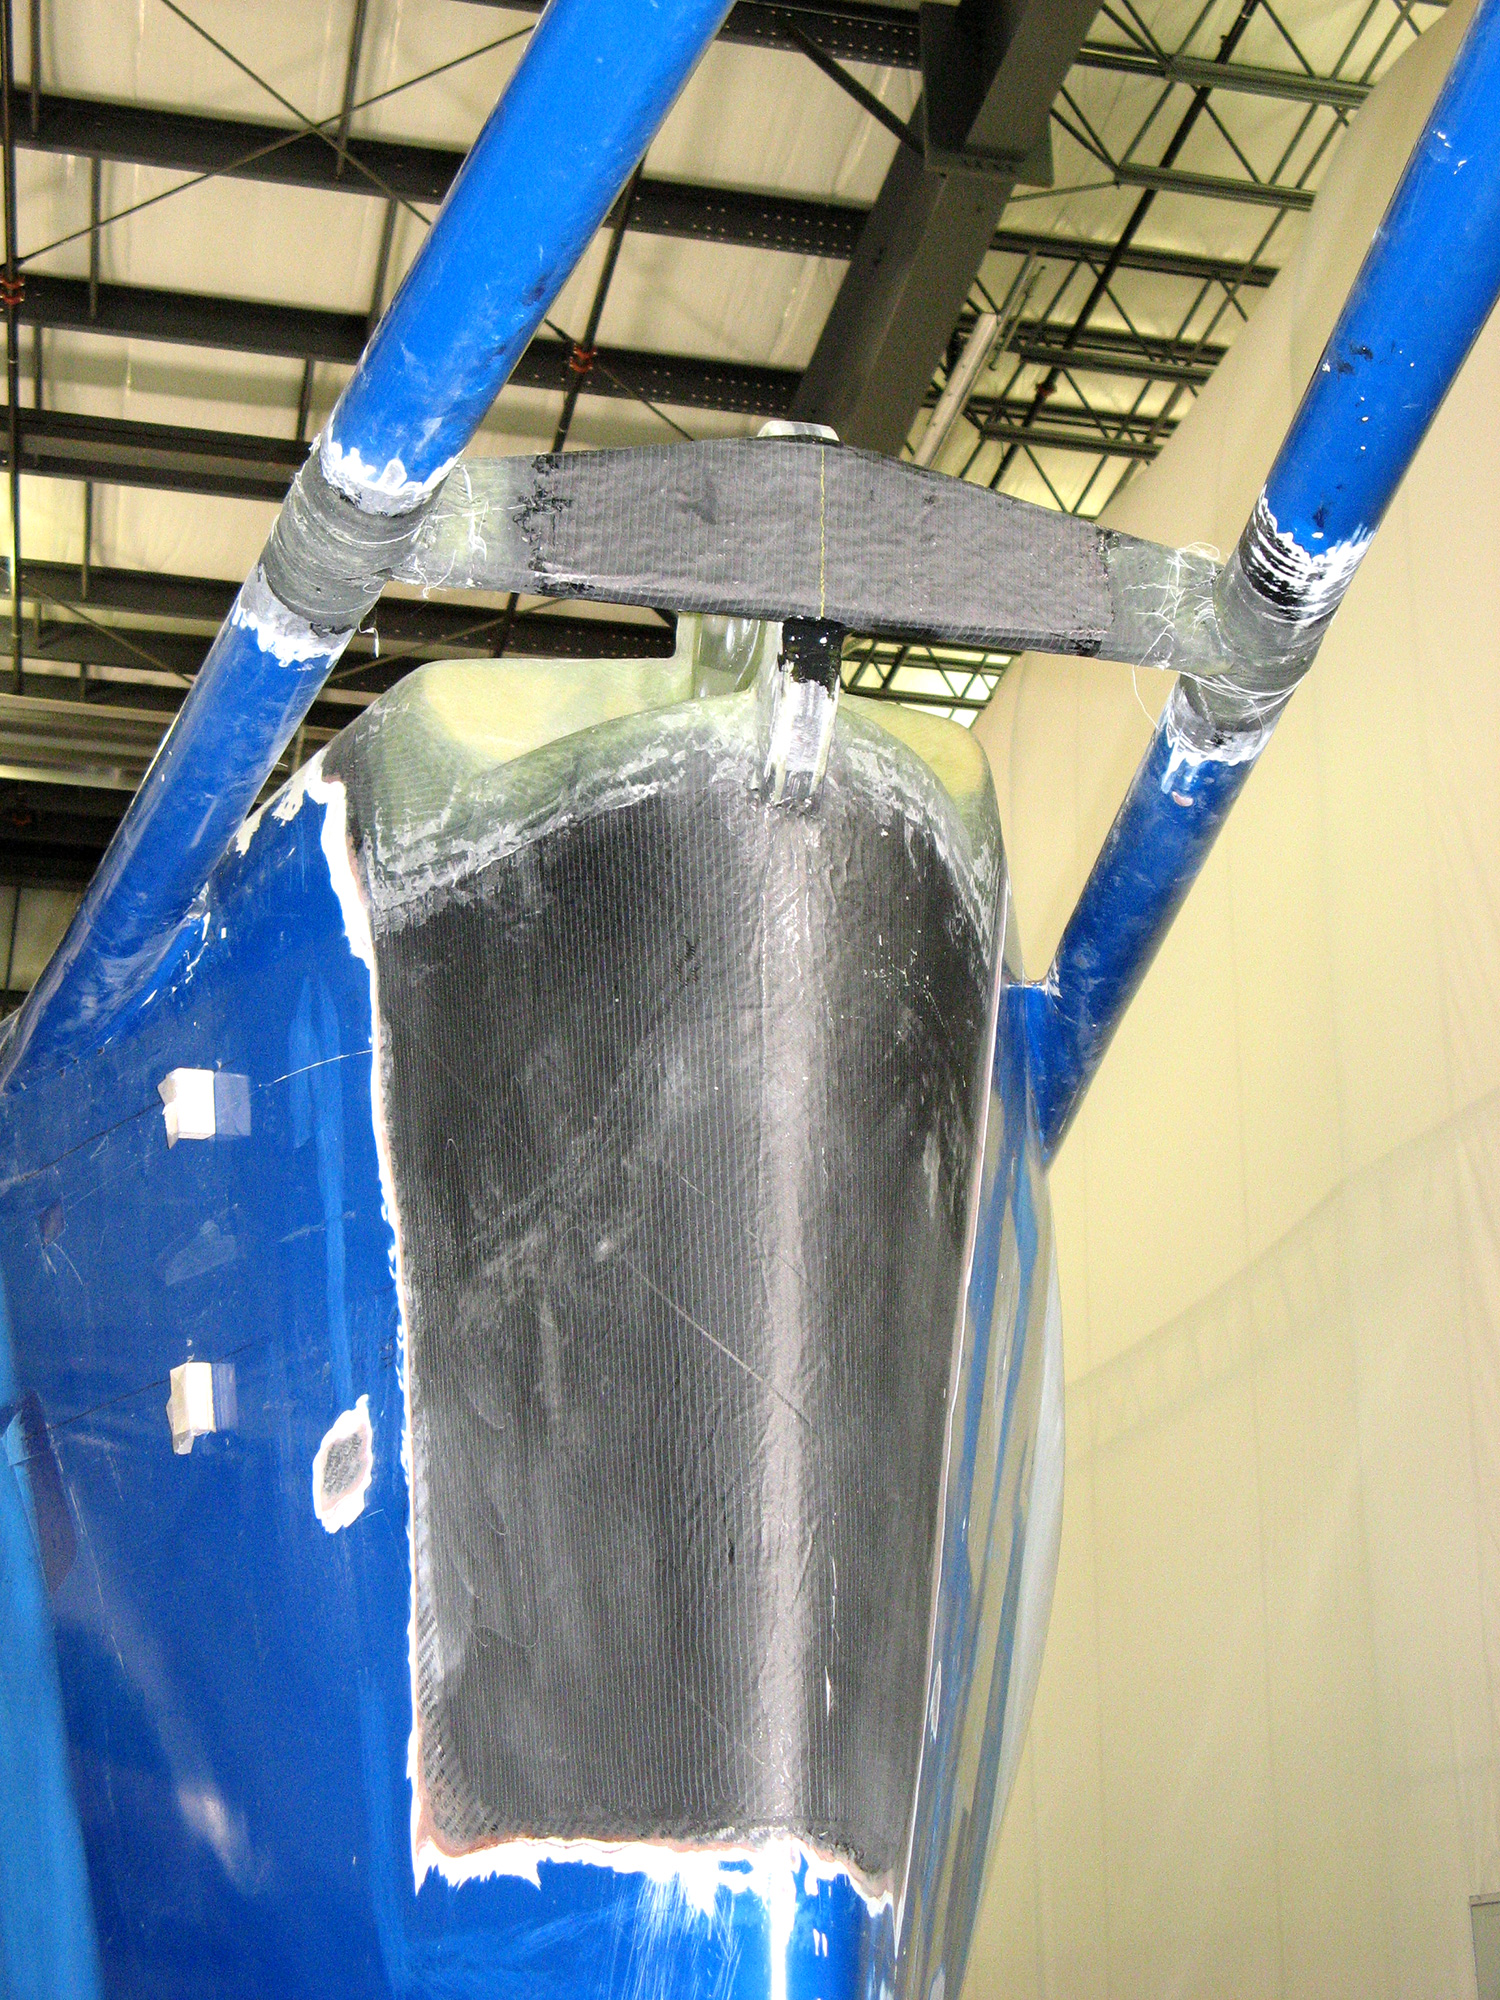 The repair required cutting away a section of              the bow to expose the solid carbon fiber centerline structure, repairing              and modifying the carbon fiber stem fitting, and then rebuilding,              fairing, and painting the stem.